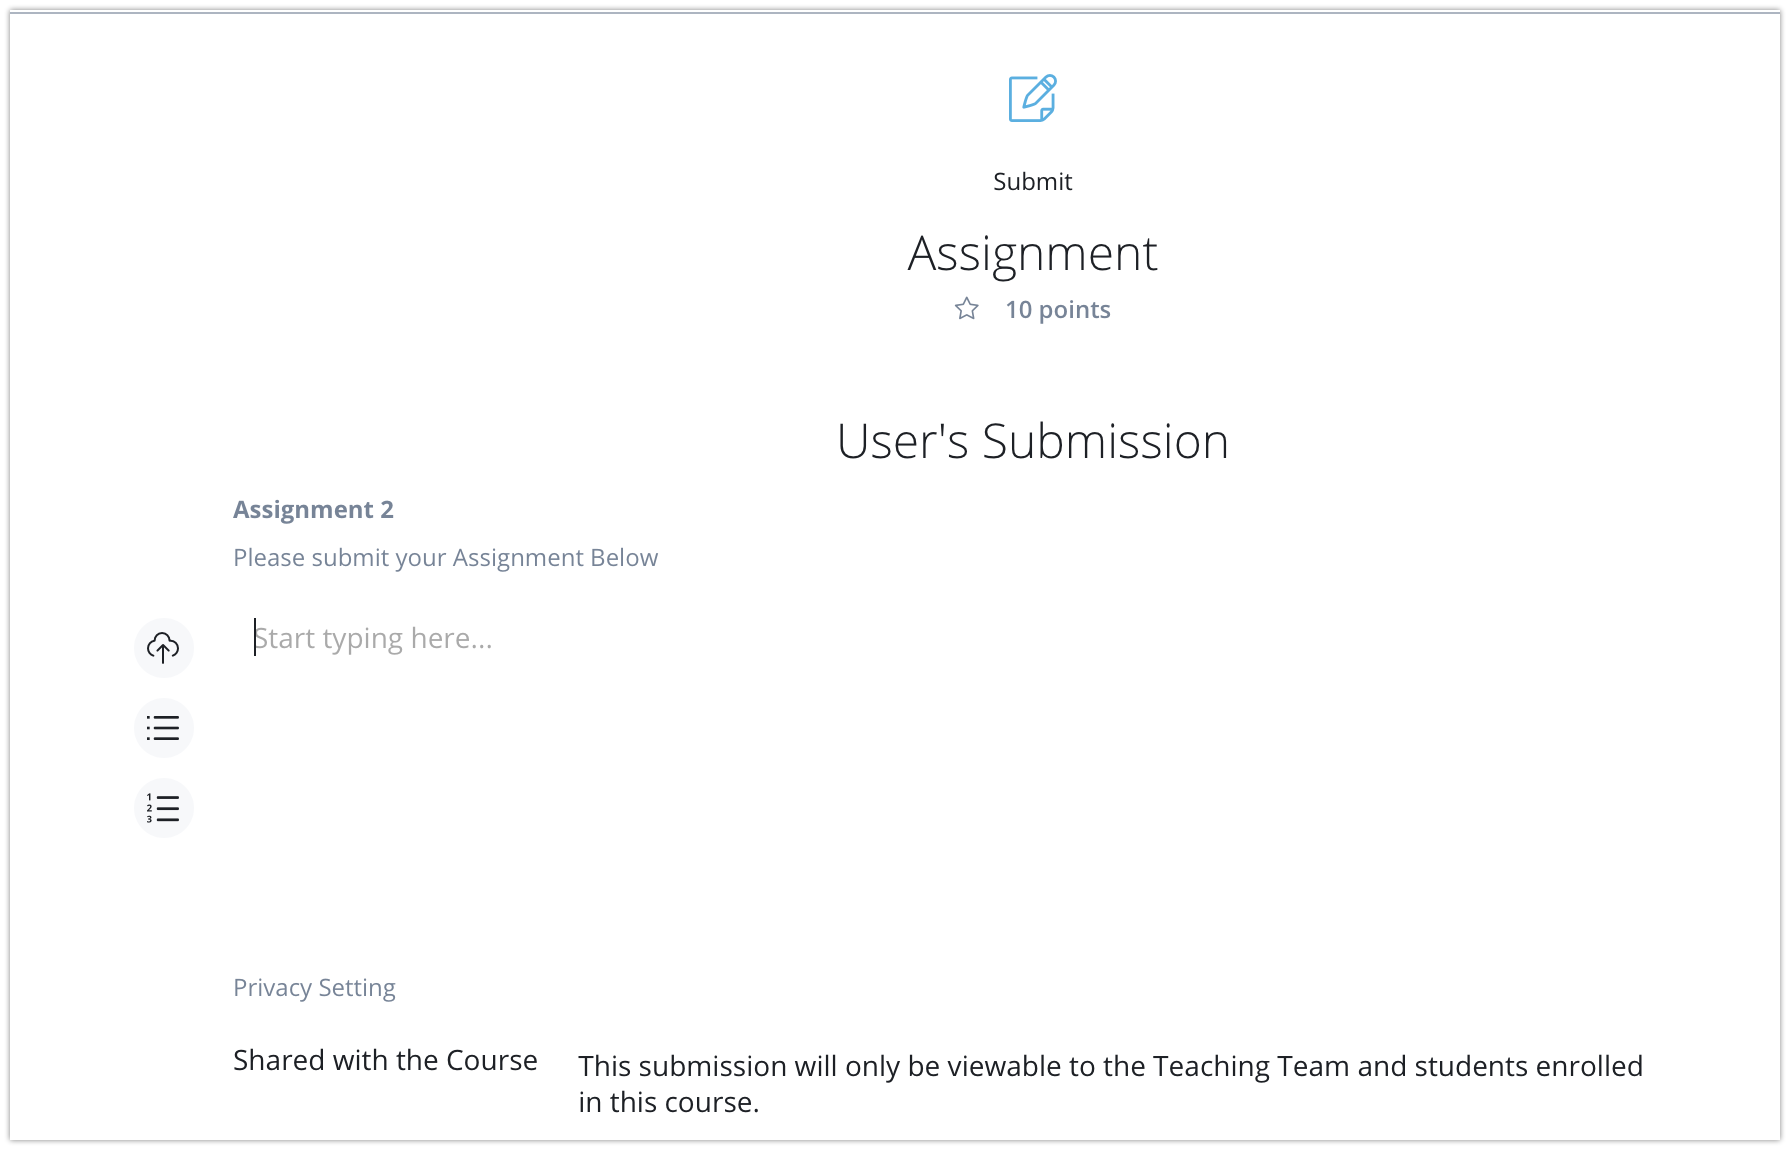 assignment-submission-new.png